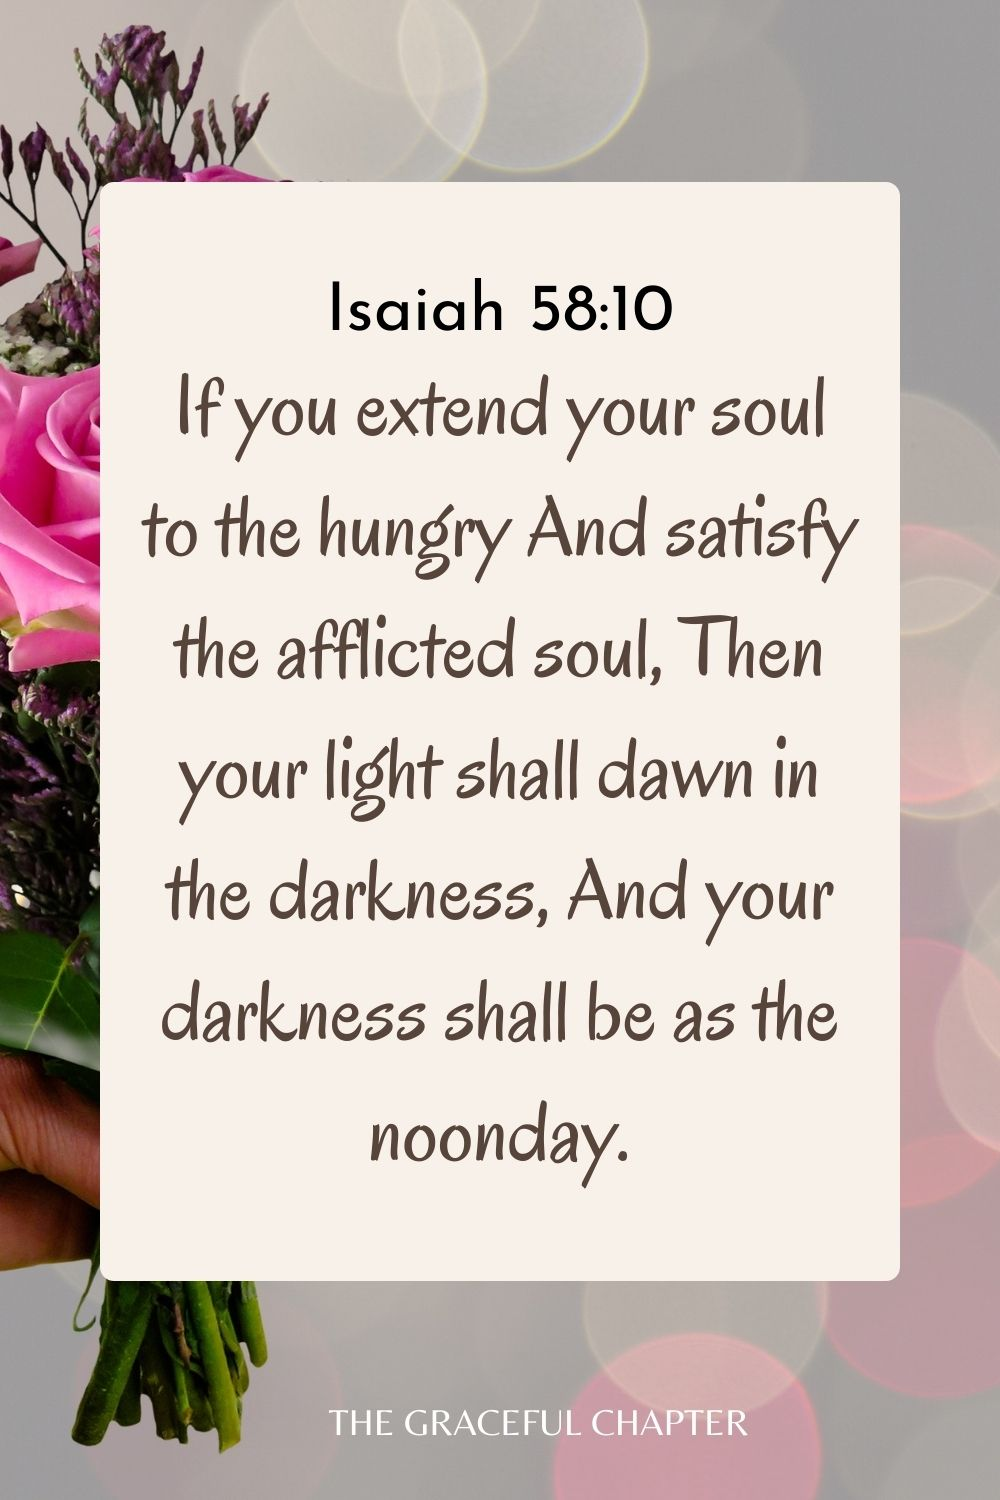 If you extend your soul to the hungry And satisfy the afflicted soul, Then your light shall dawn in the darkness, And your darkness shall be as the noonday. Isaiah 58:10